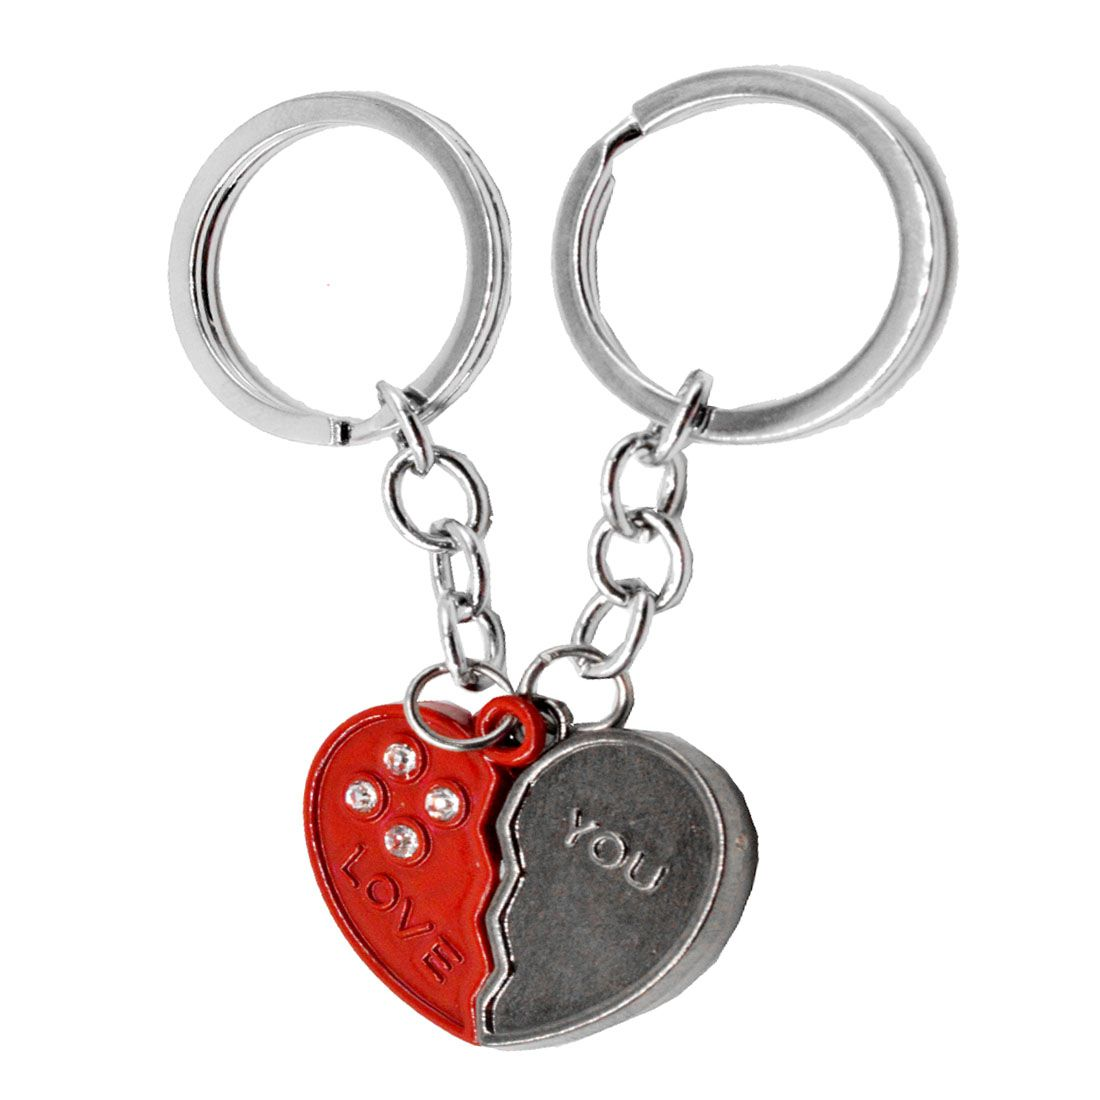 Faynci High Quality Couple Souvenir with stone gift Key chain for Valentine Day